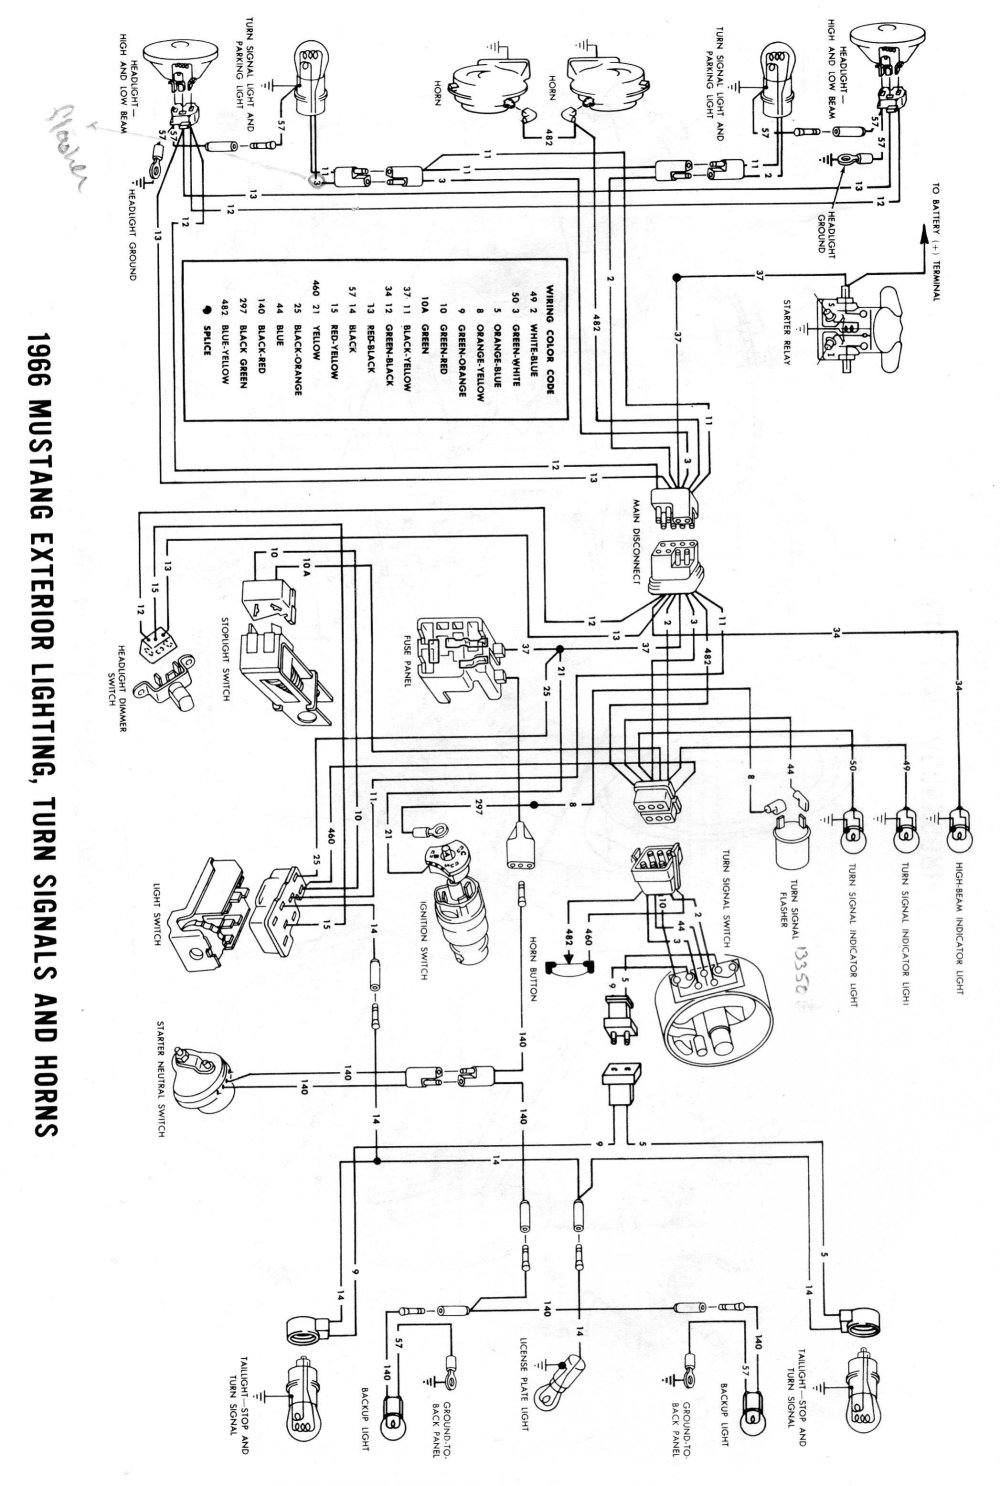 medium resolution of 73 cougar wiring diagram wiring diagrams global73 cougar wiring diagram blog wiring diagram 1973 ford mustang